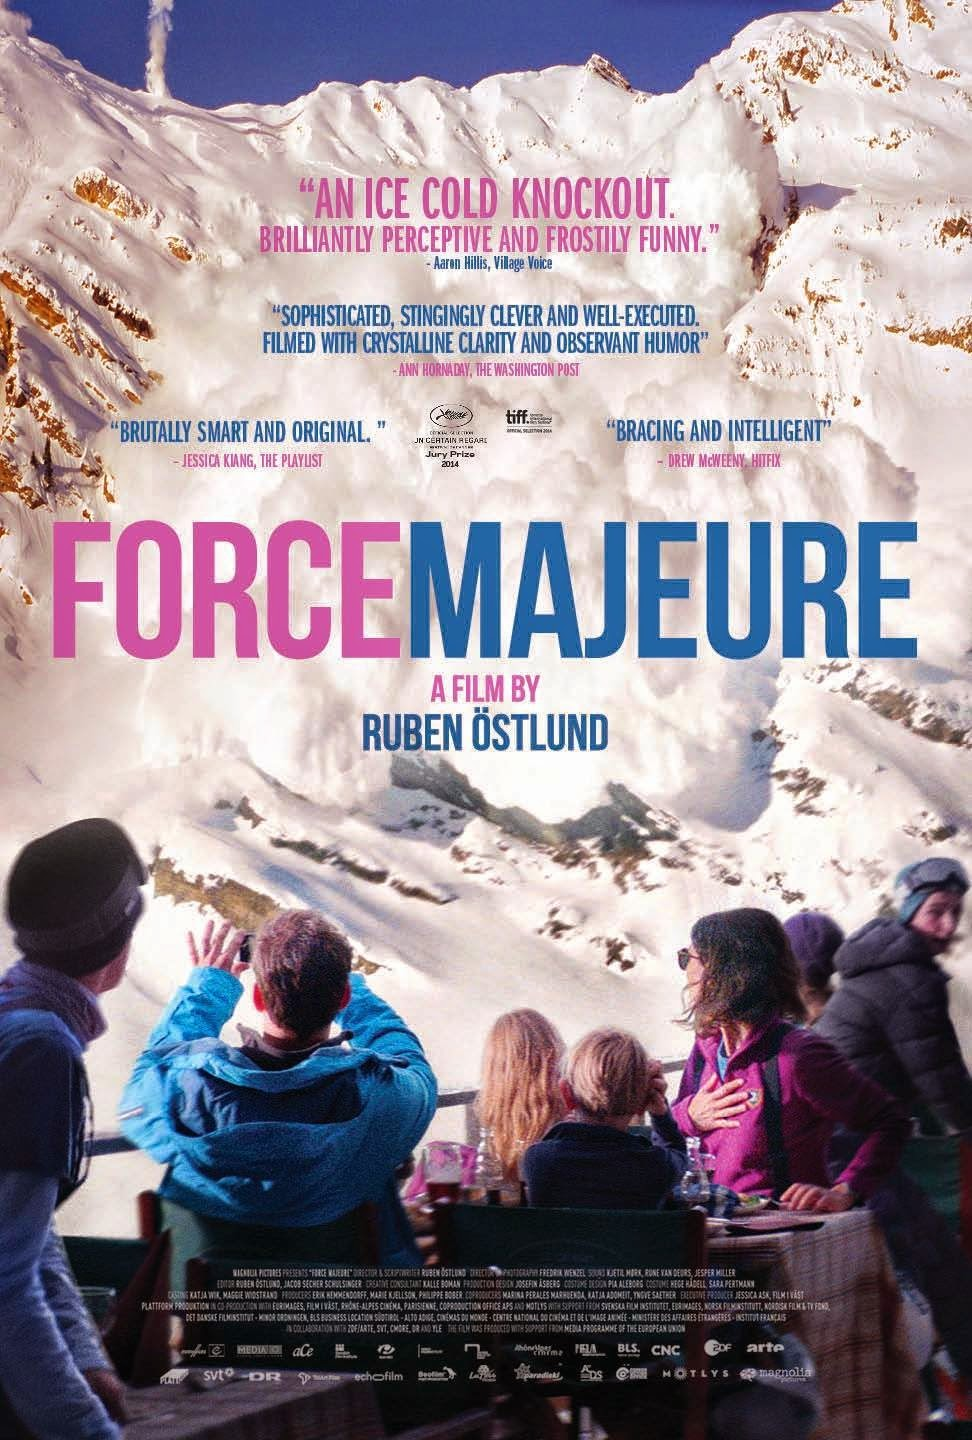 Force Majeure, Directed by Ruben Östlund, Movie Poster